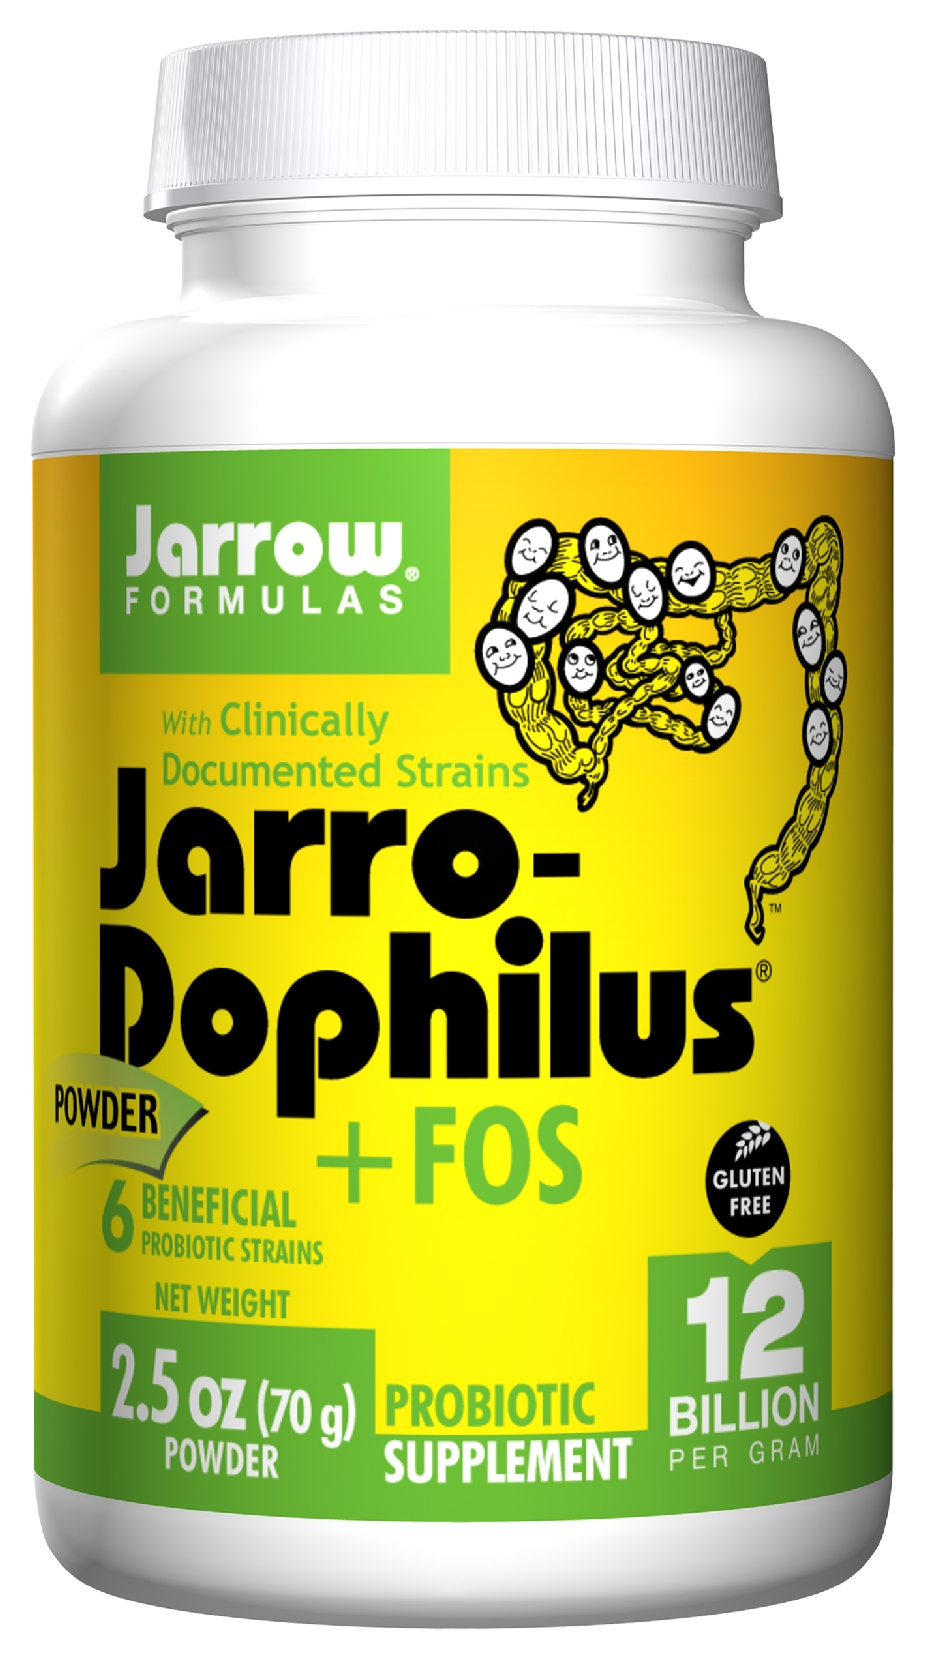 Jarro-Dophilus + FOS Powder 2.5 oz (70 g) by Jarrow Formulas